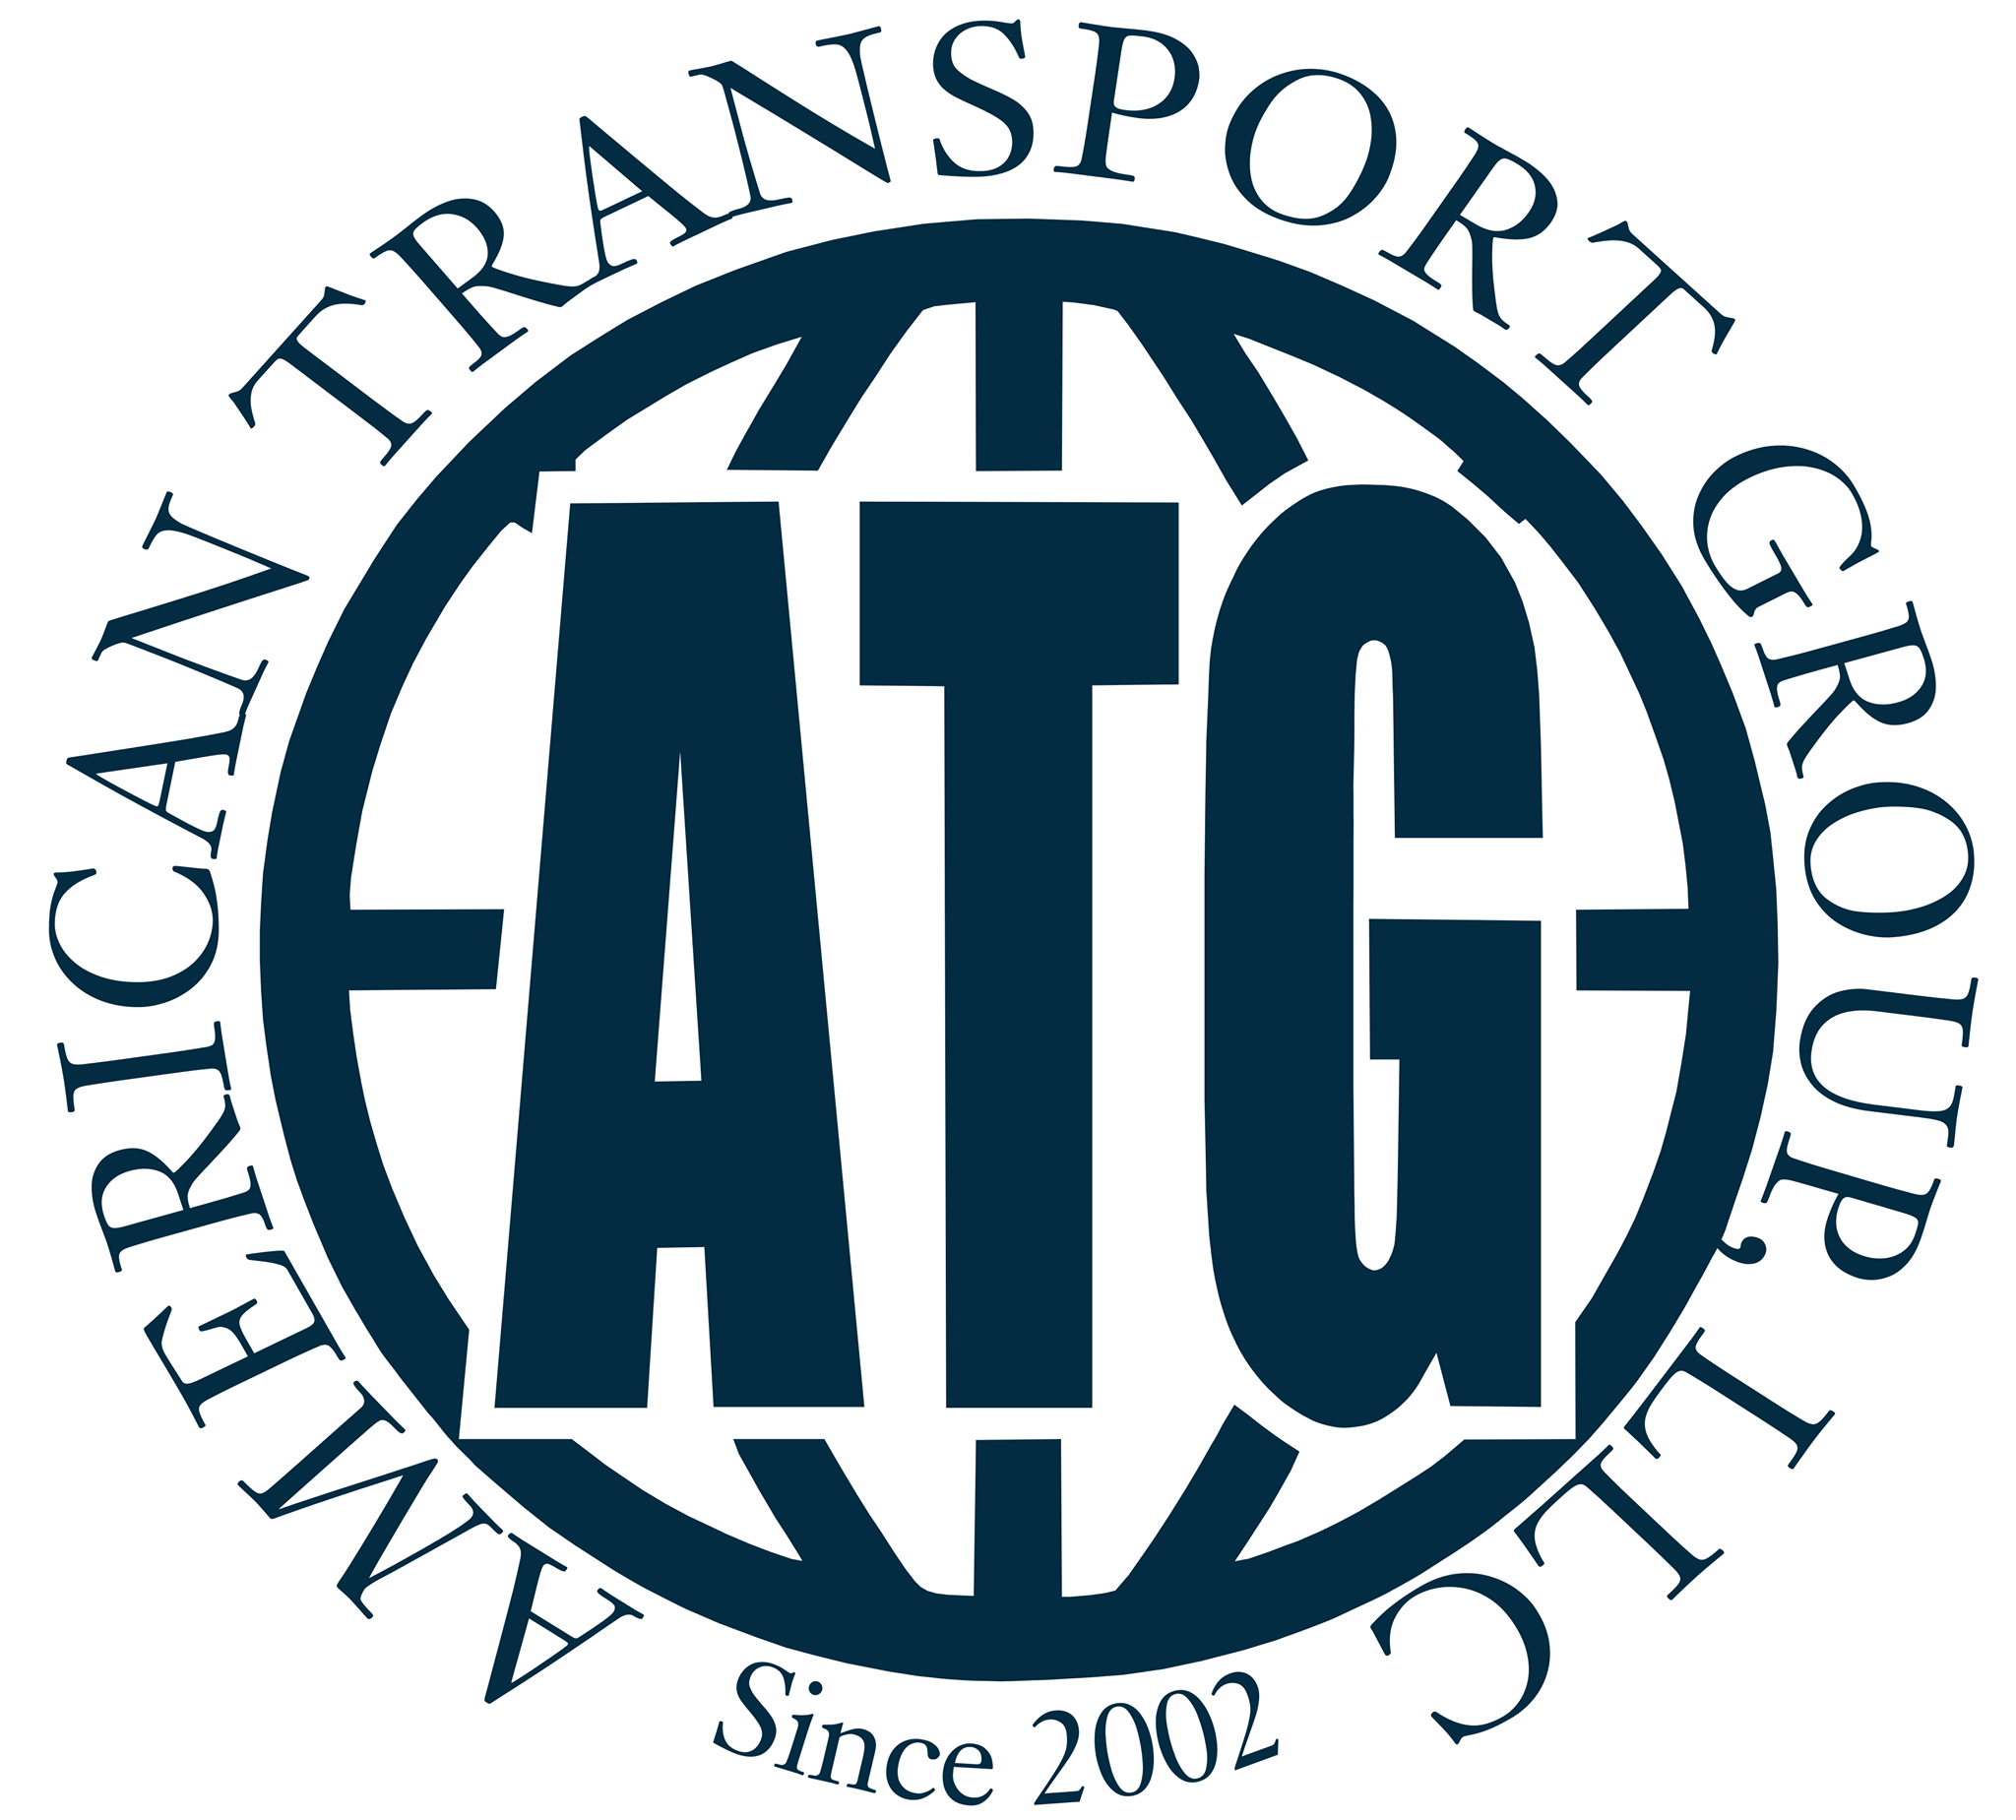 American Transport Group